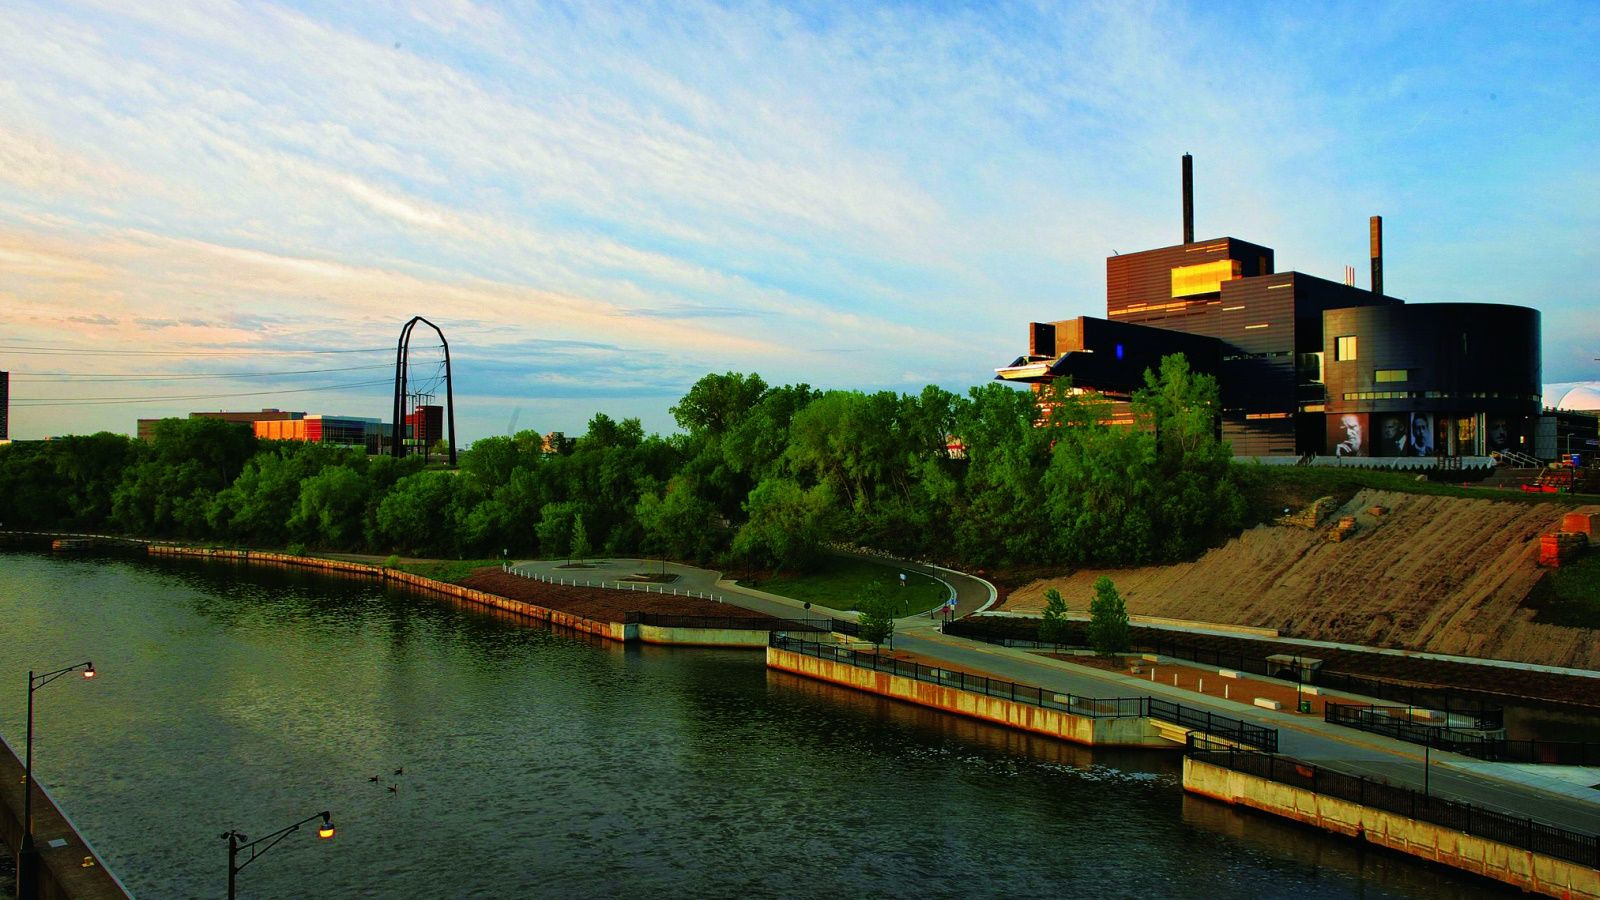 Stay & Play at the Guthrie Theater